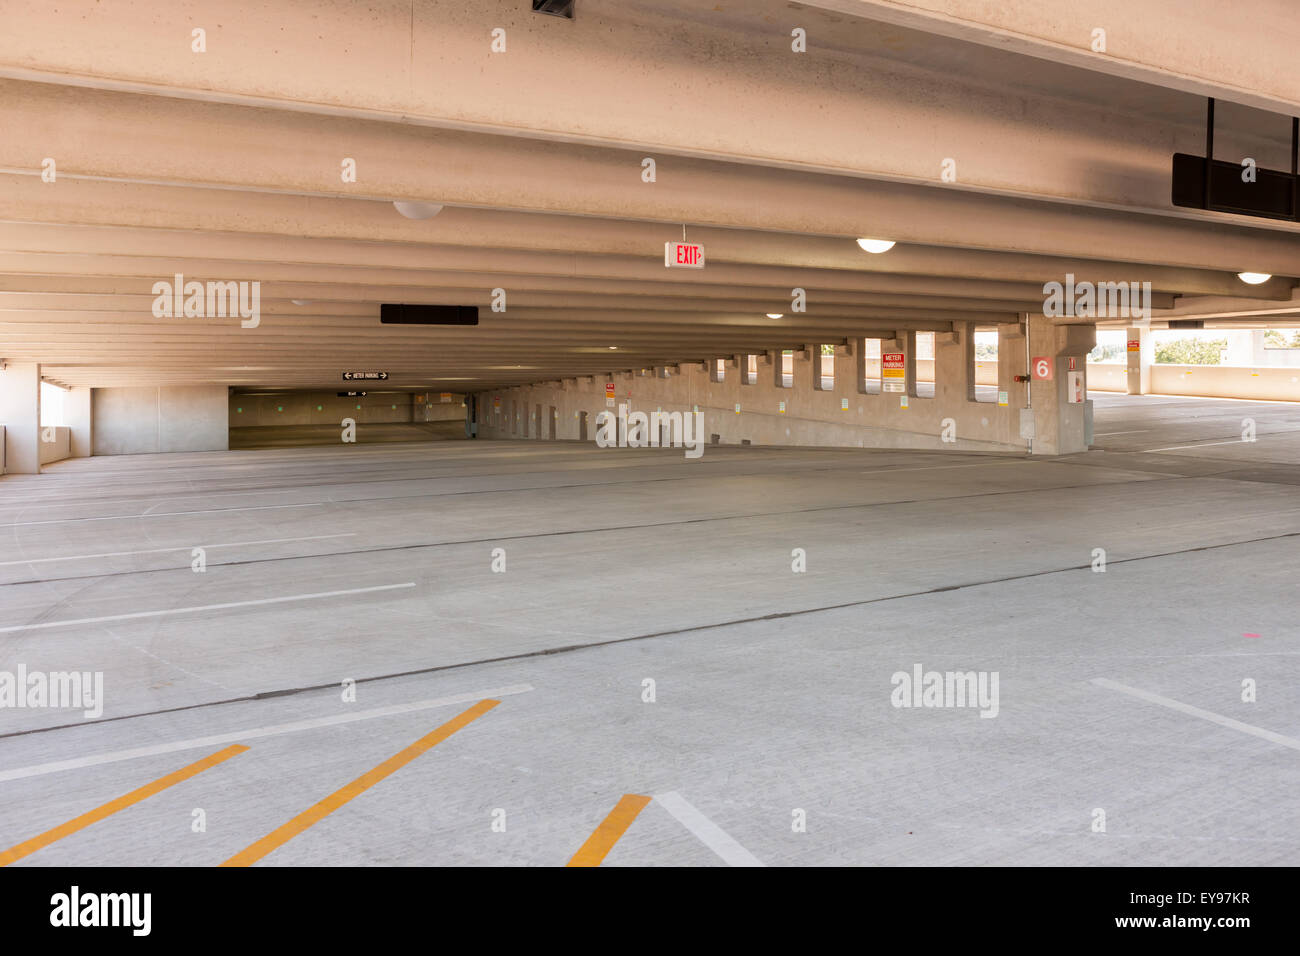 An empty parking level and spaces in the Lyon Place municipal parking garage in White Plains, New York. - Stock Image